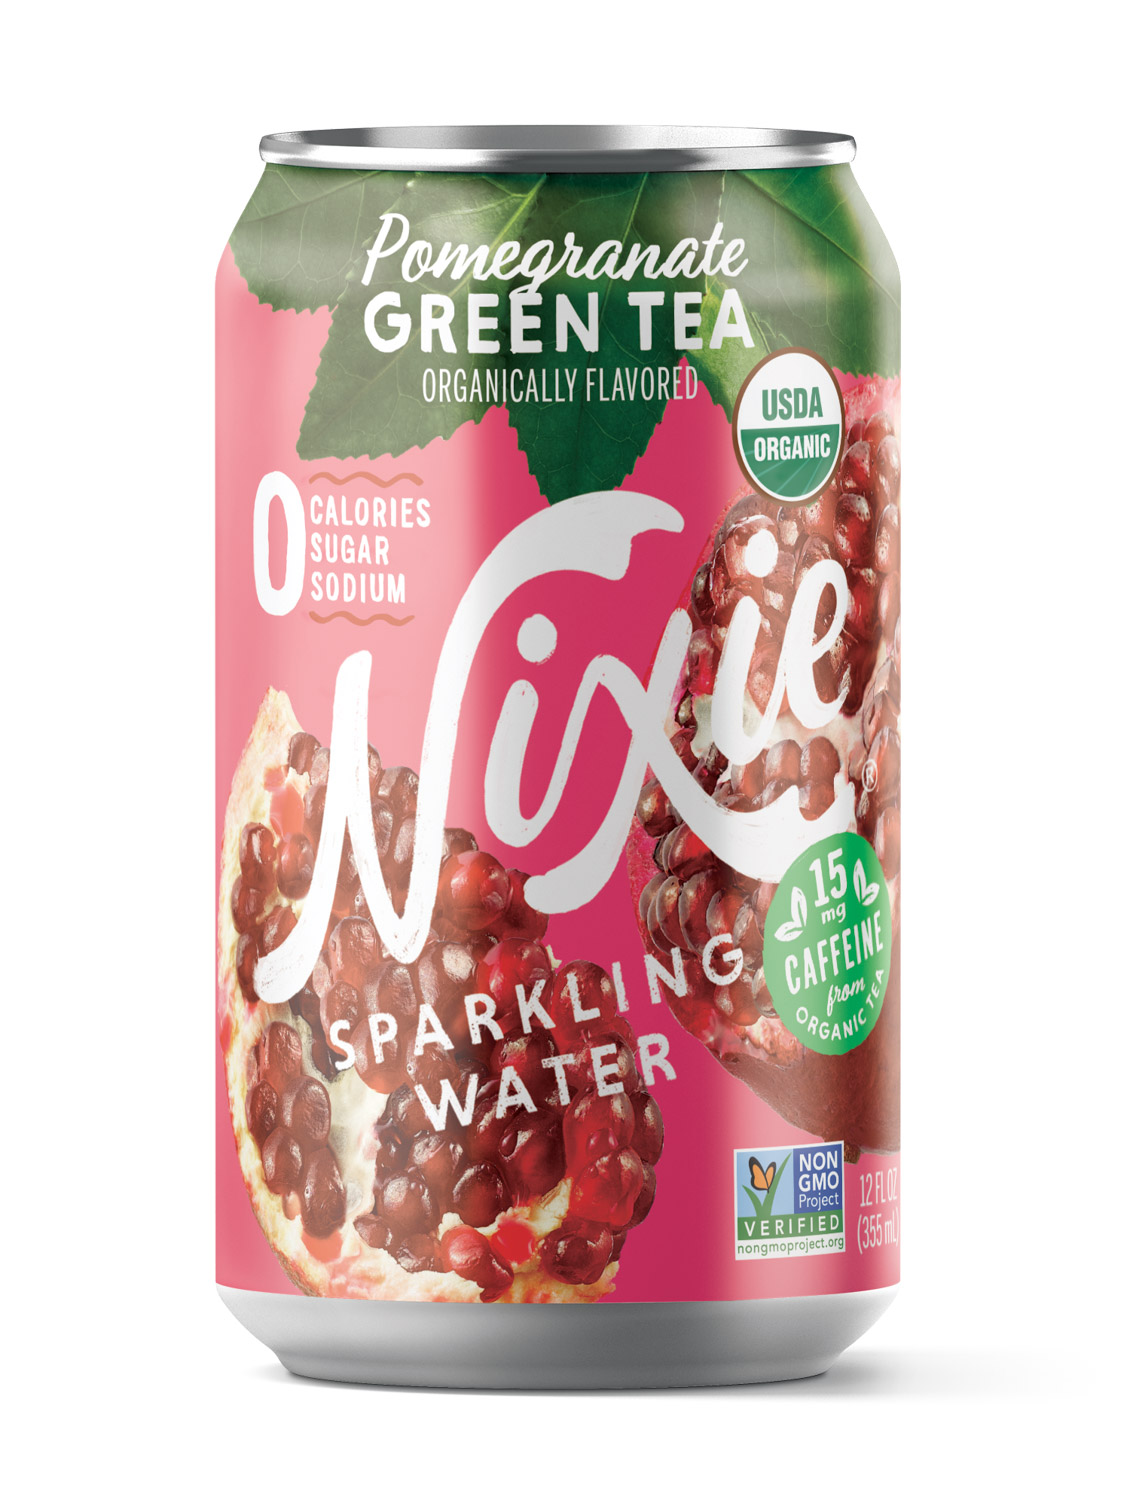 Pomegranate Green Tea Sparkling Water